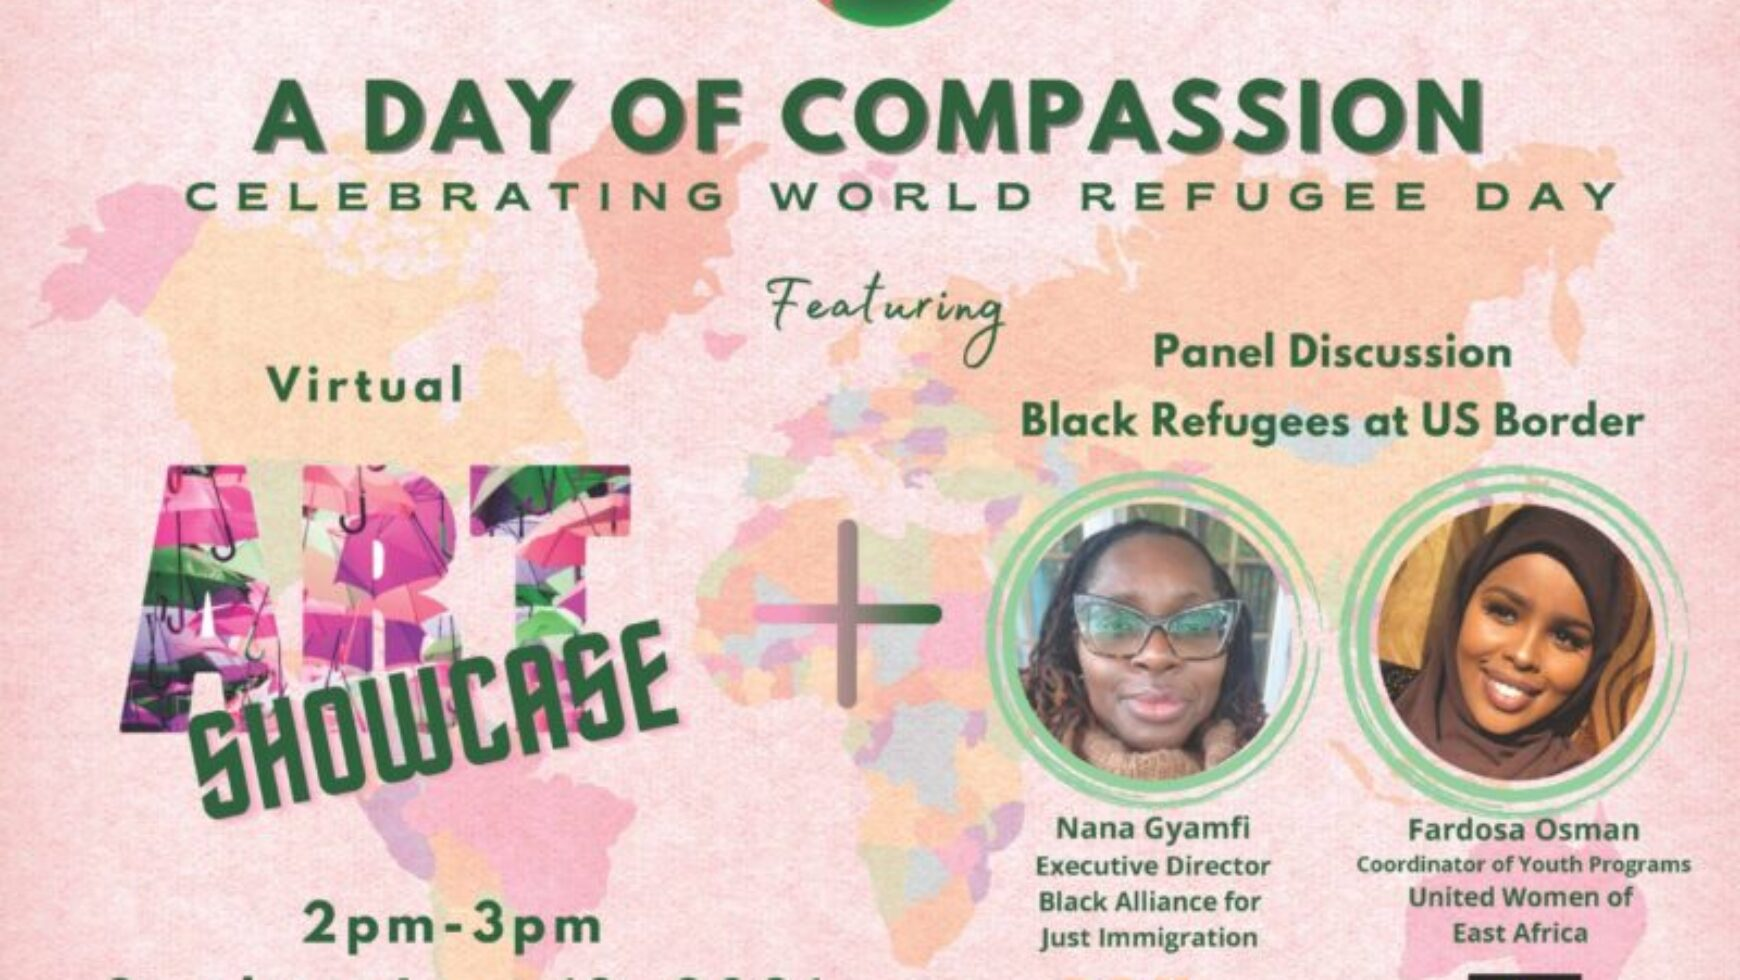 A Day of Compassion: Black Refugees at US Border